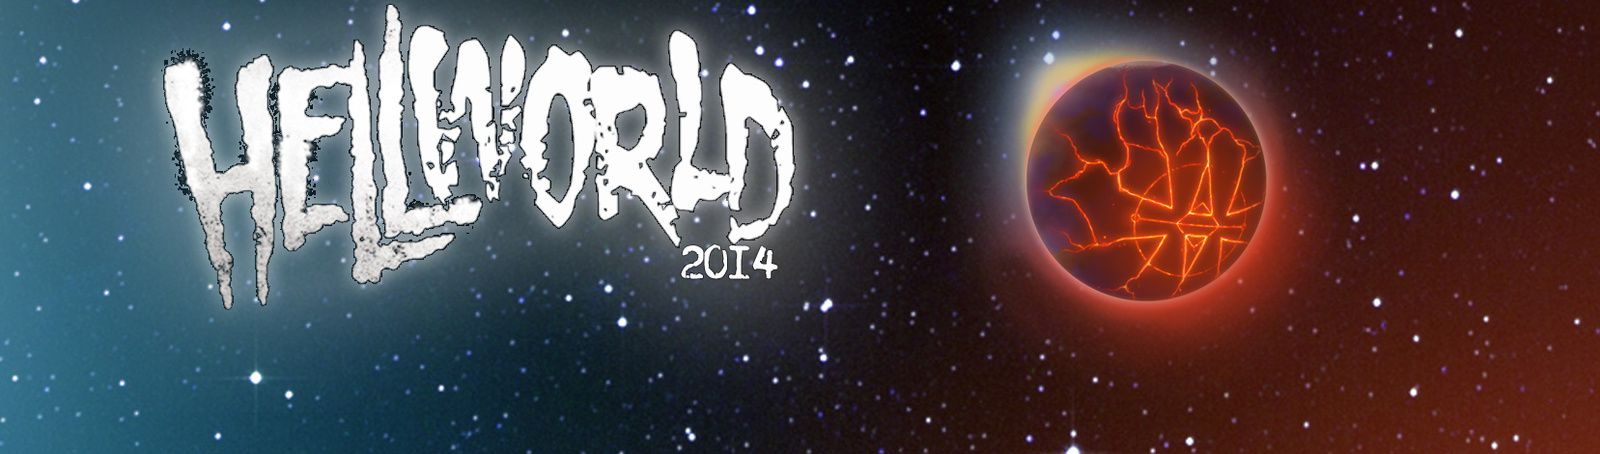 Hellworld 2014, The Last Episode: Free MP3!